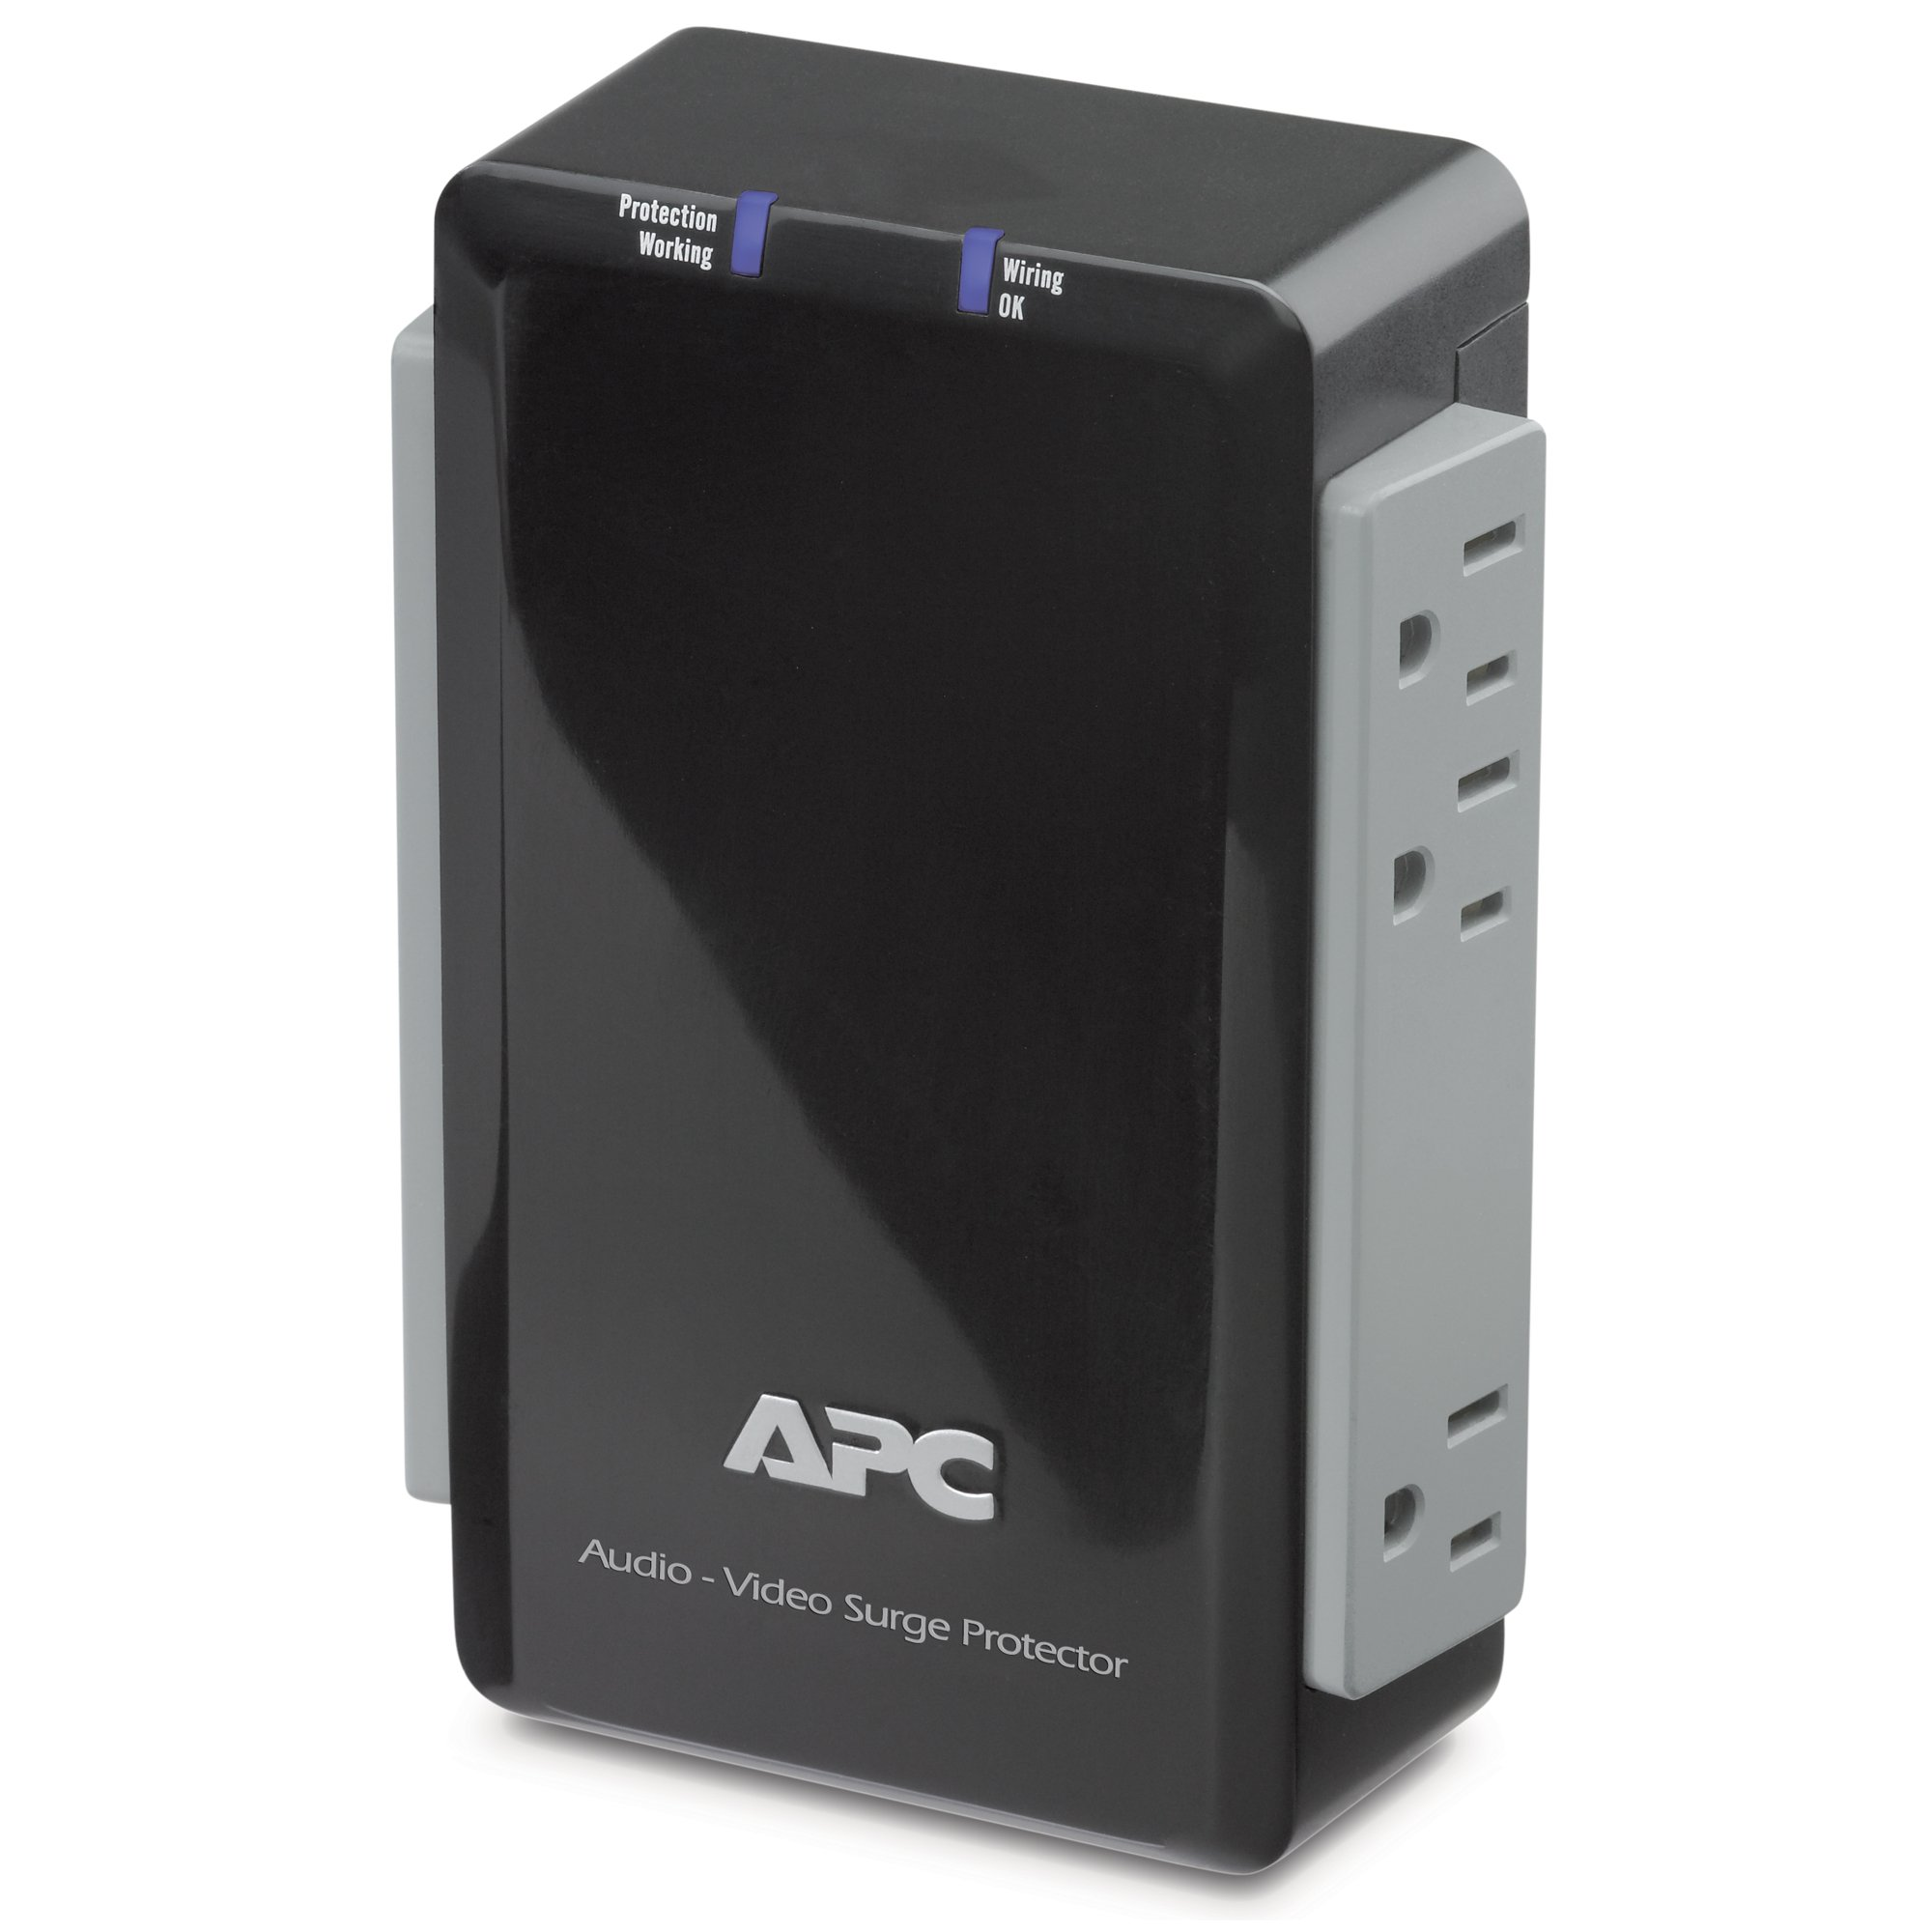 APC P4V Audio/Video 120V Surge Protector 4 Outlet with Coax Protection.